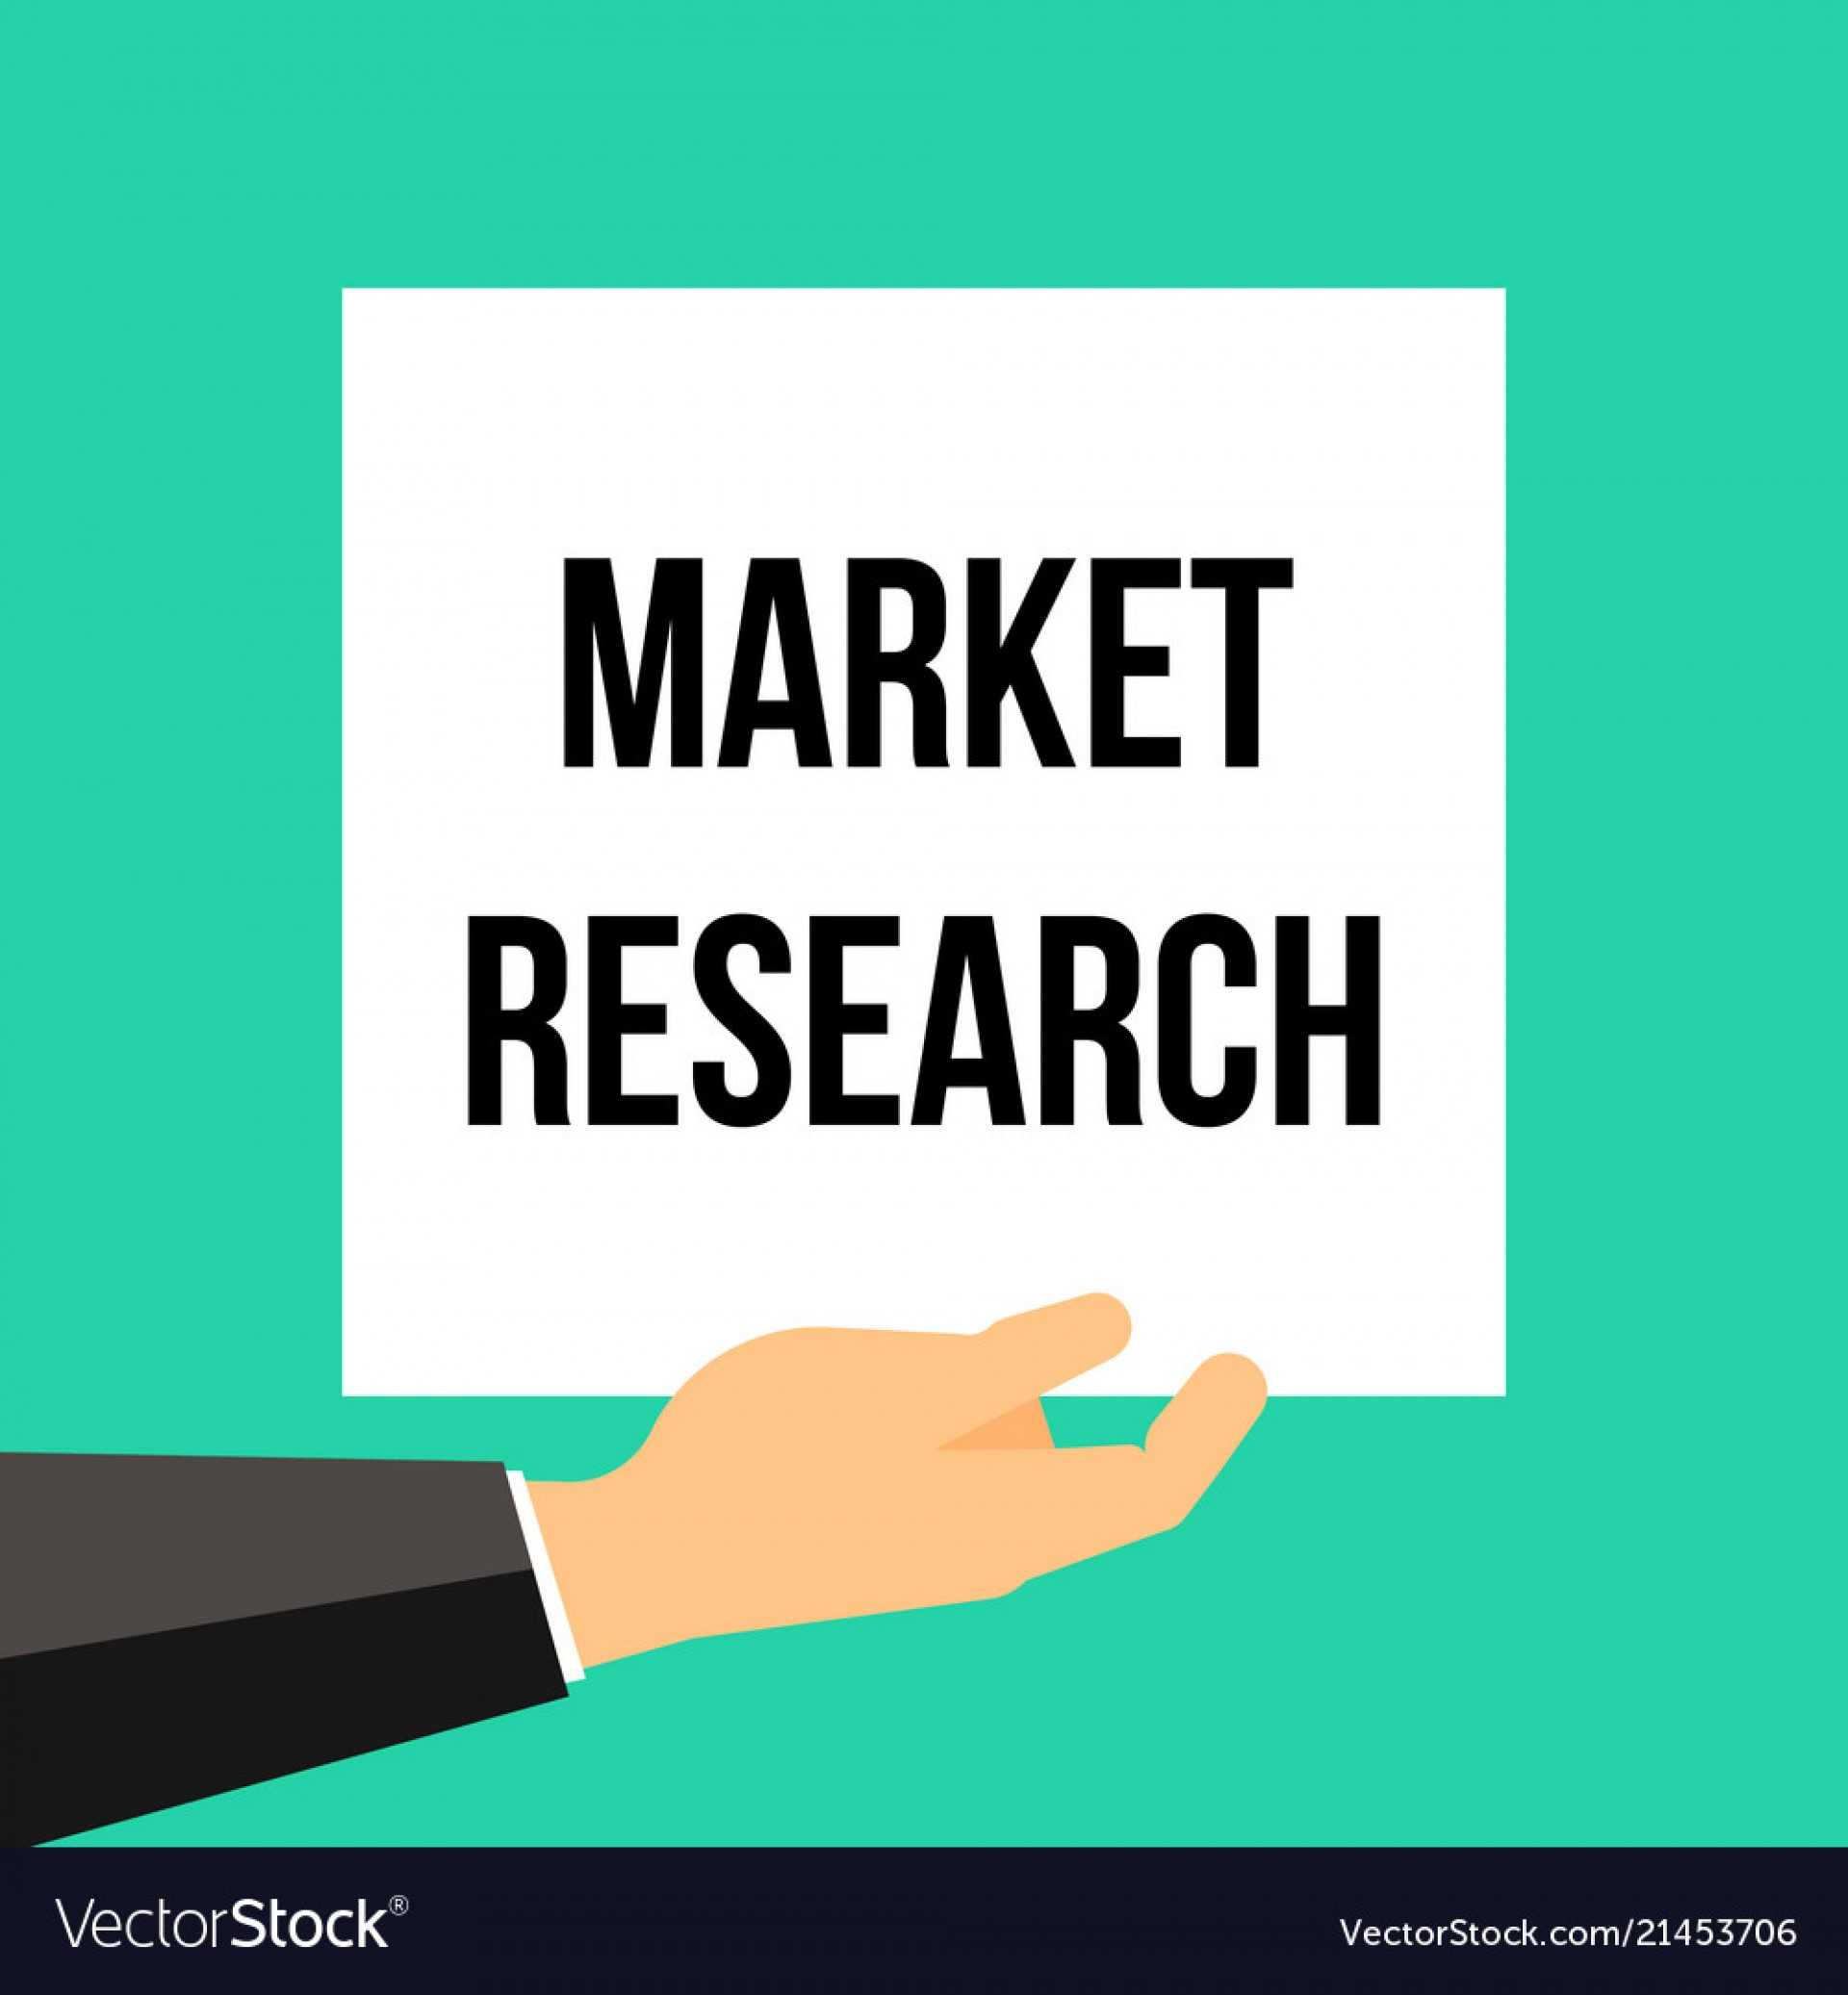 012 Research Paper Man Showing Market Text Vector Marketing Papers Pdf Free Impressive Download 1920